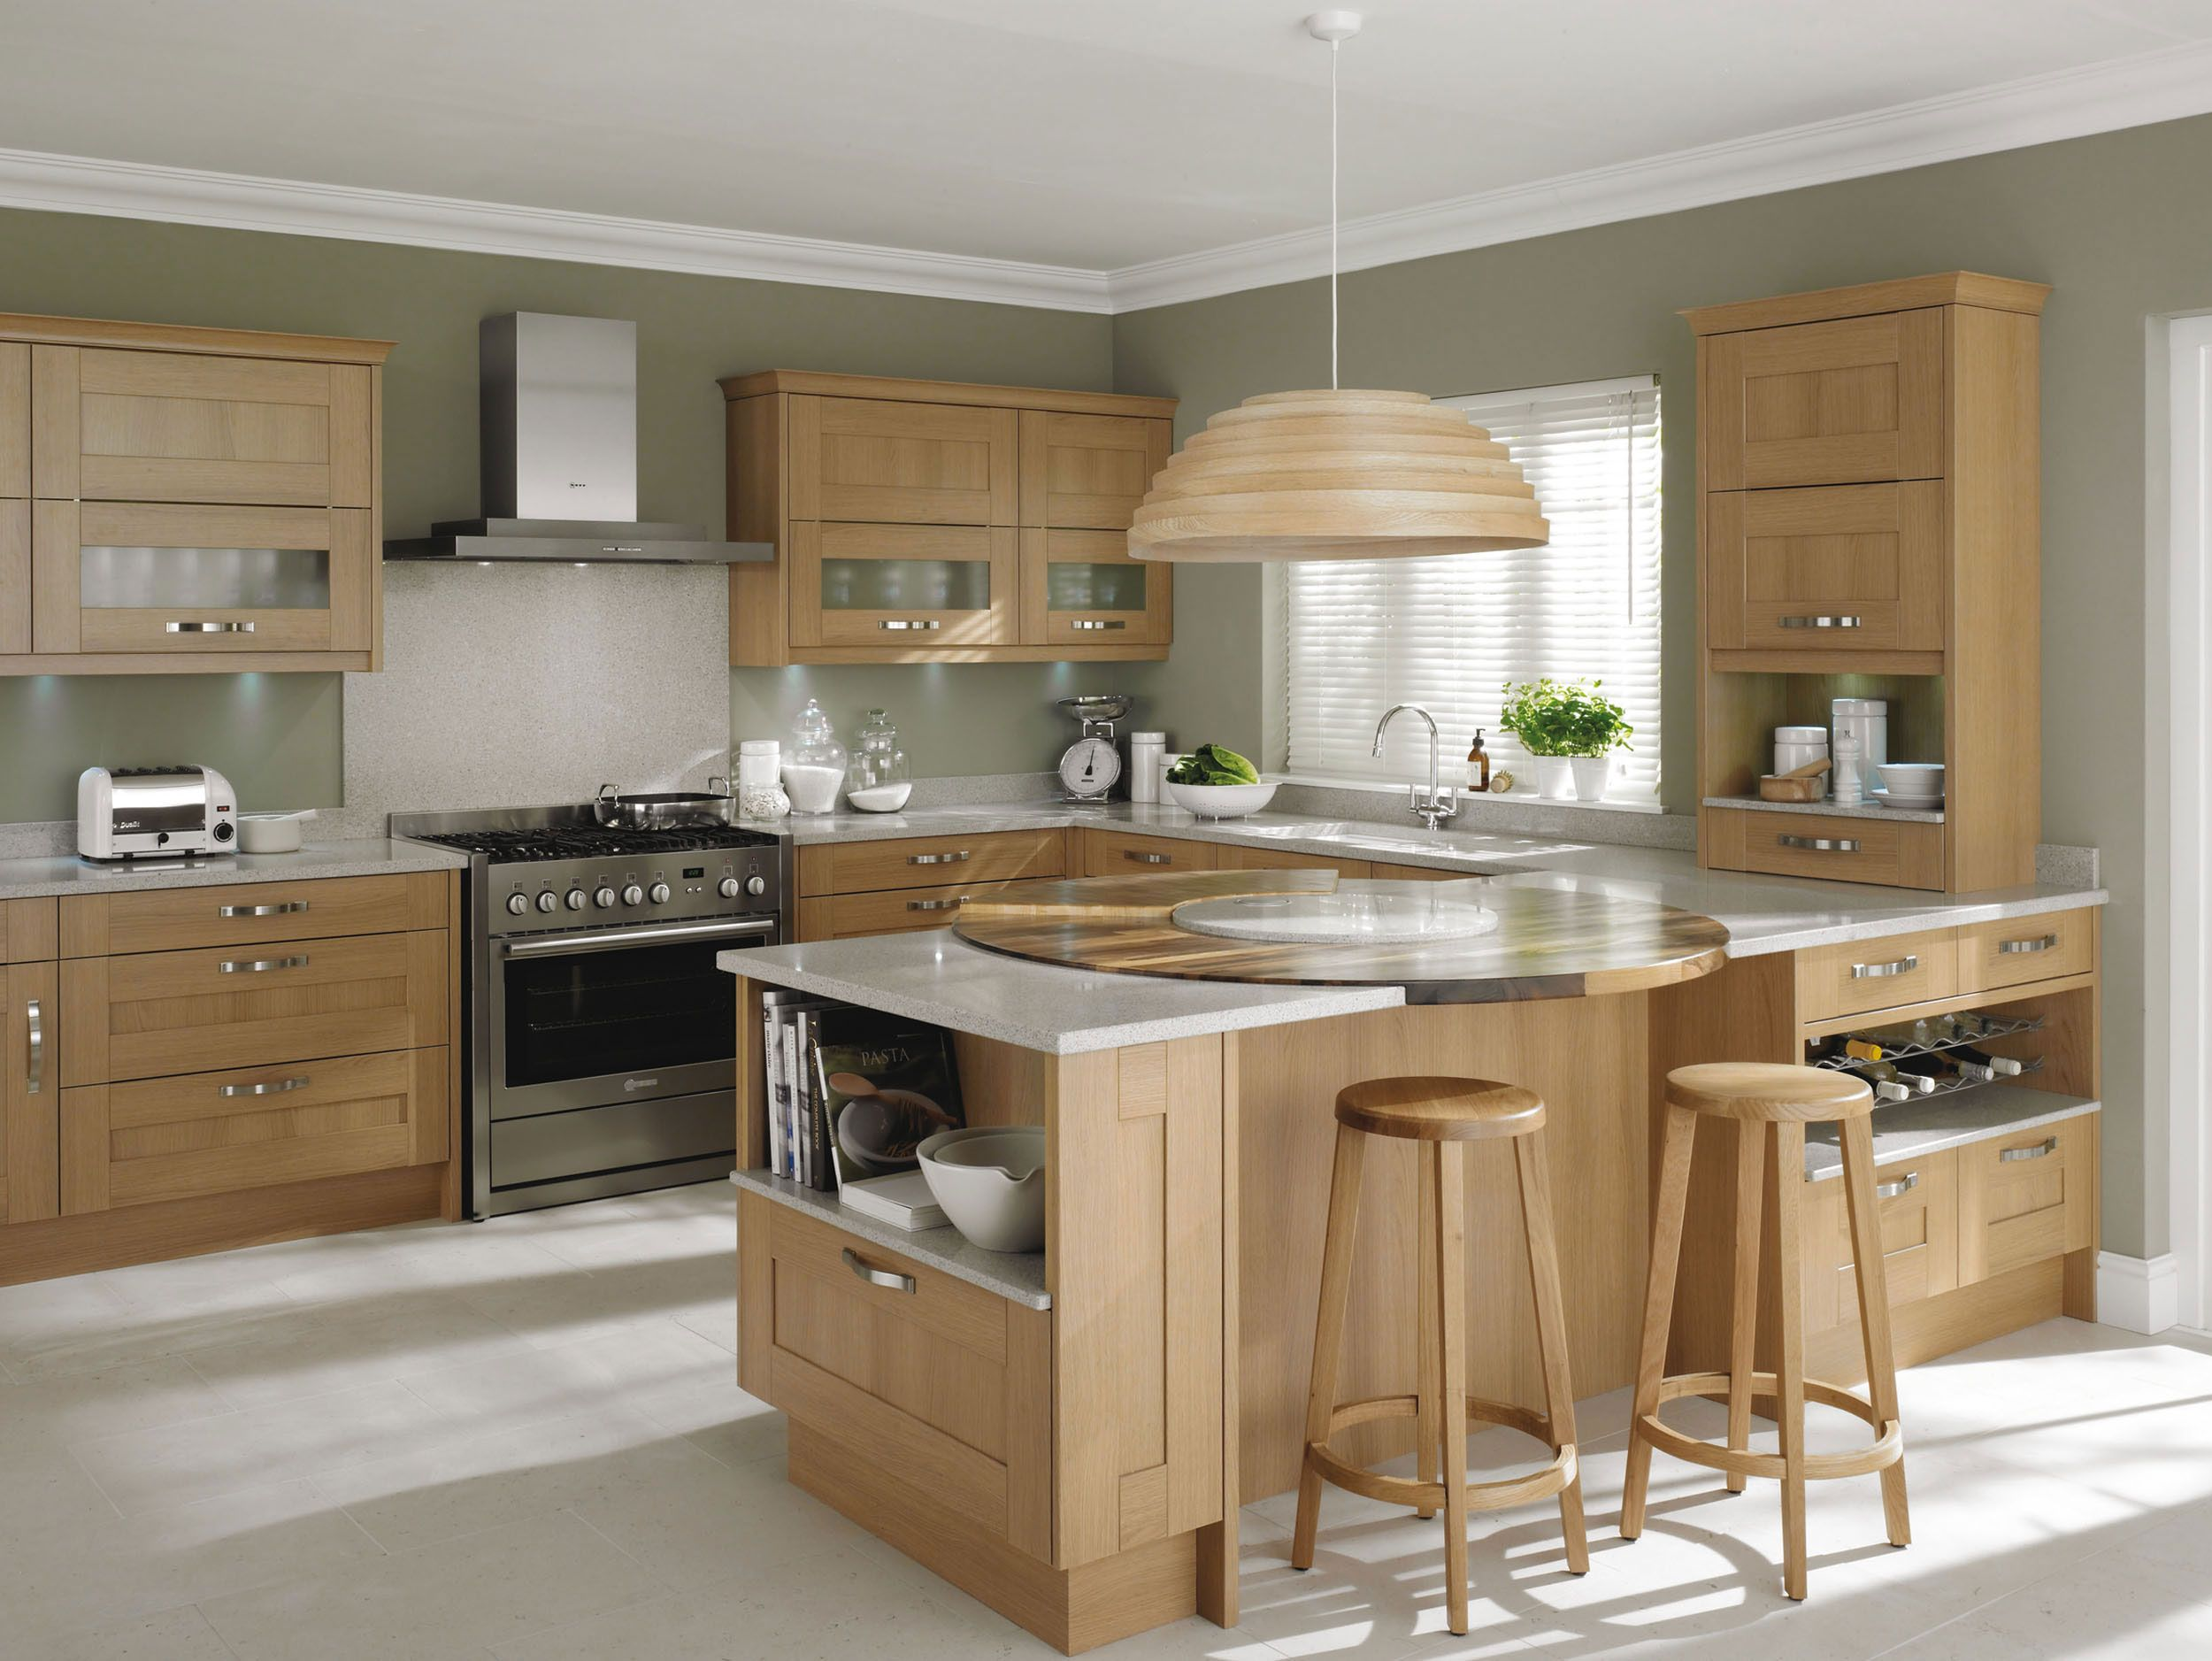 Oak kitchen ideas google search home kitchens for Kitchen units design ideas